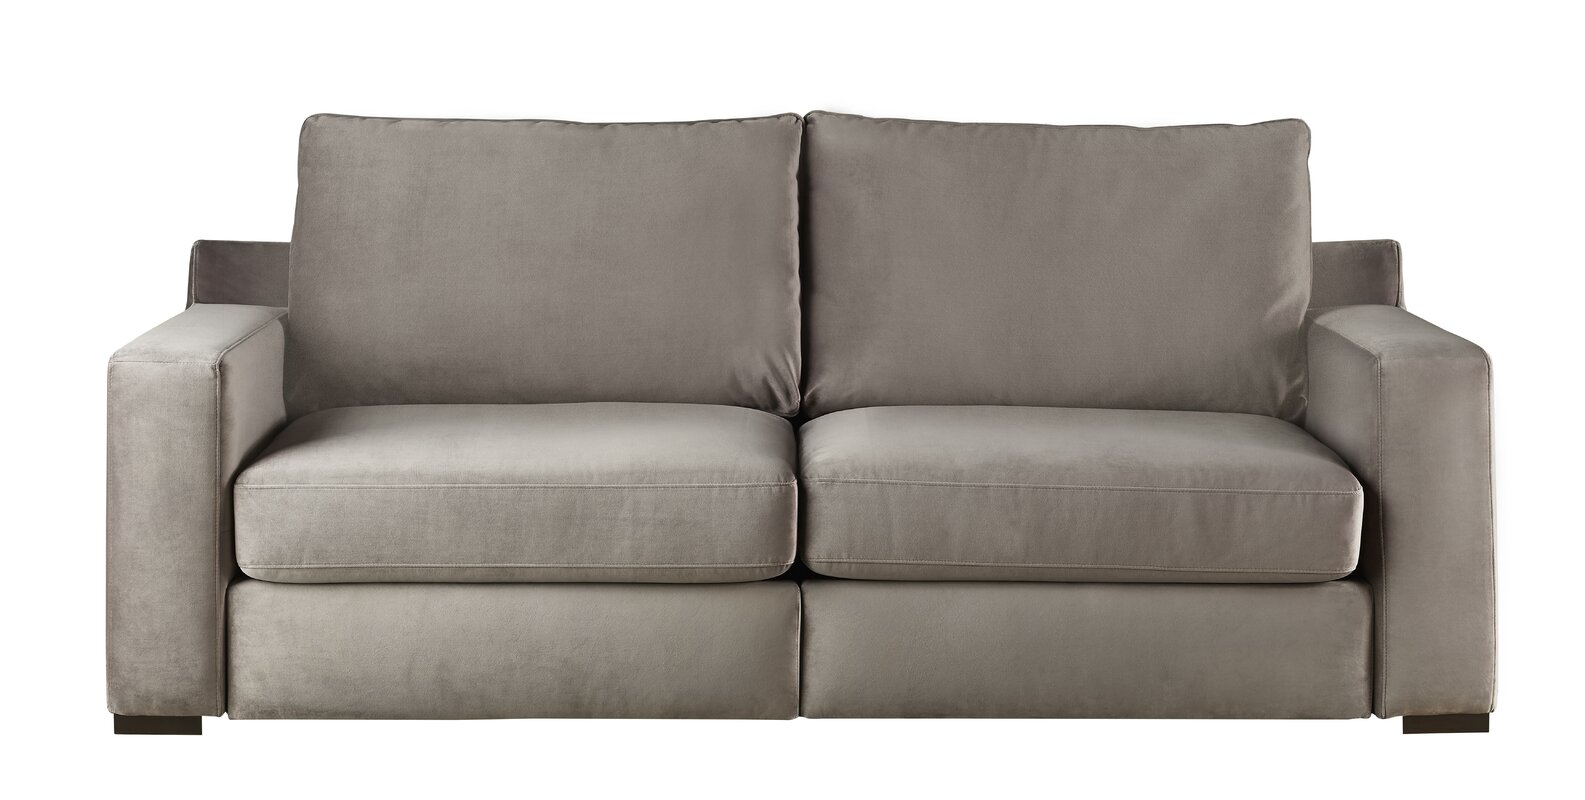 Popular 160 list low profile couch for Low couch